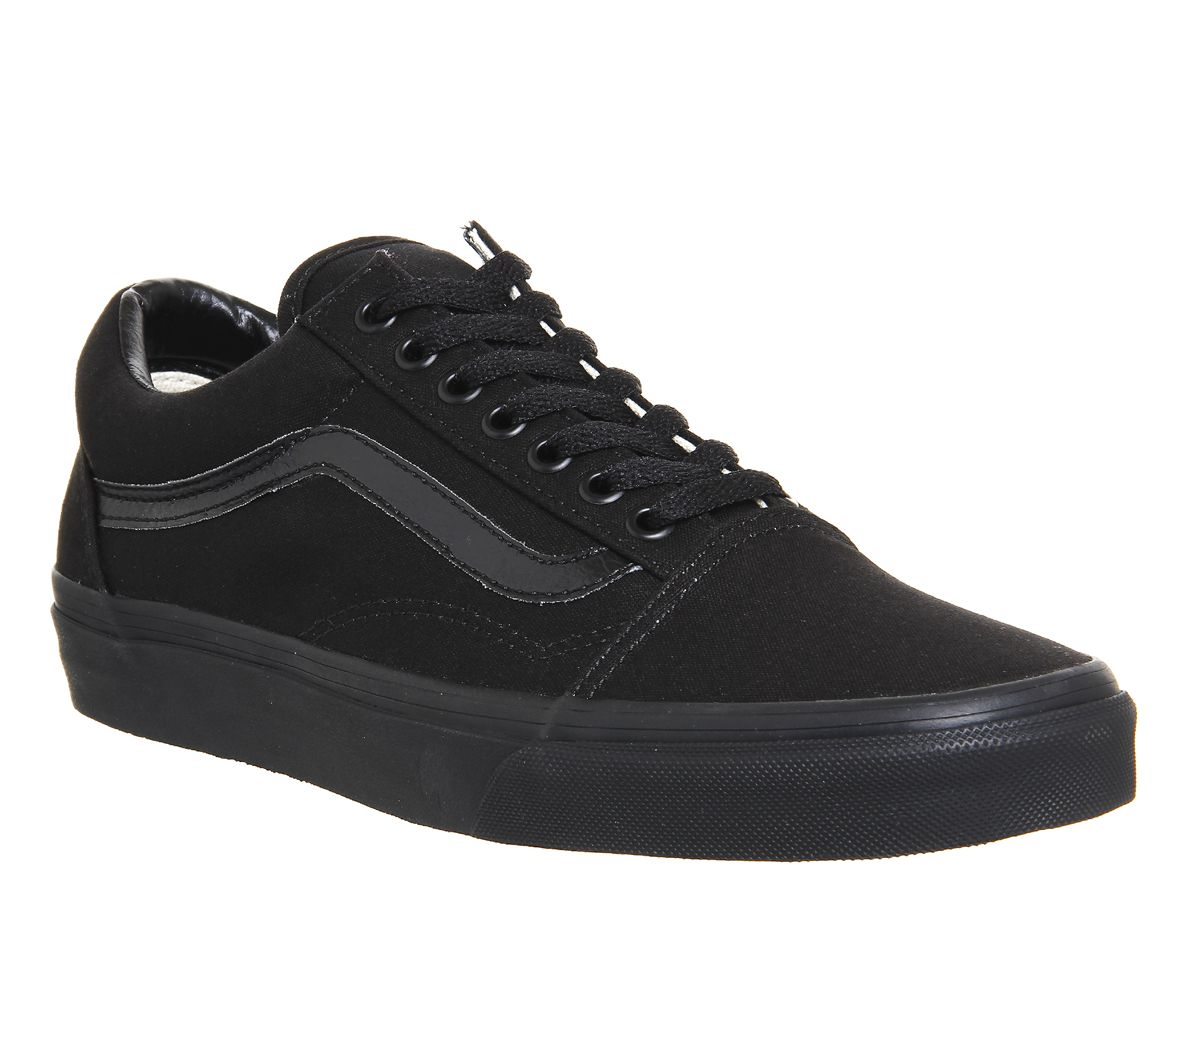 96cd501e119a Vans Old Skool Trainers Black - Unisex Sports